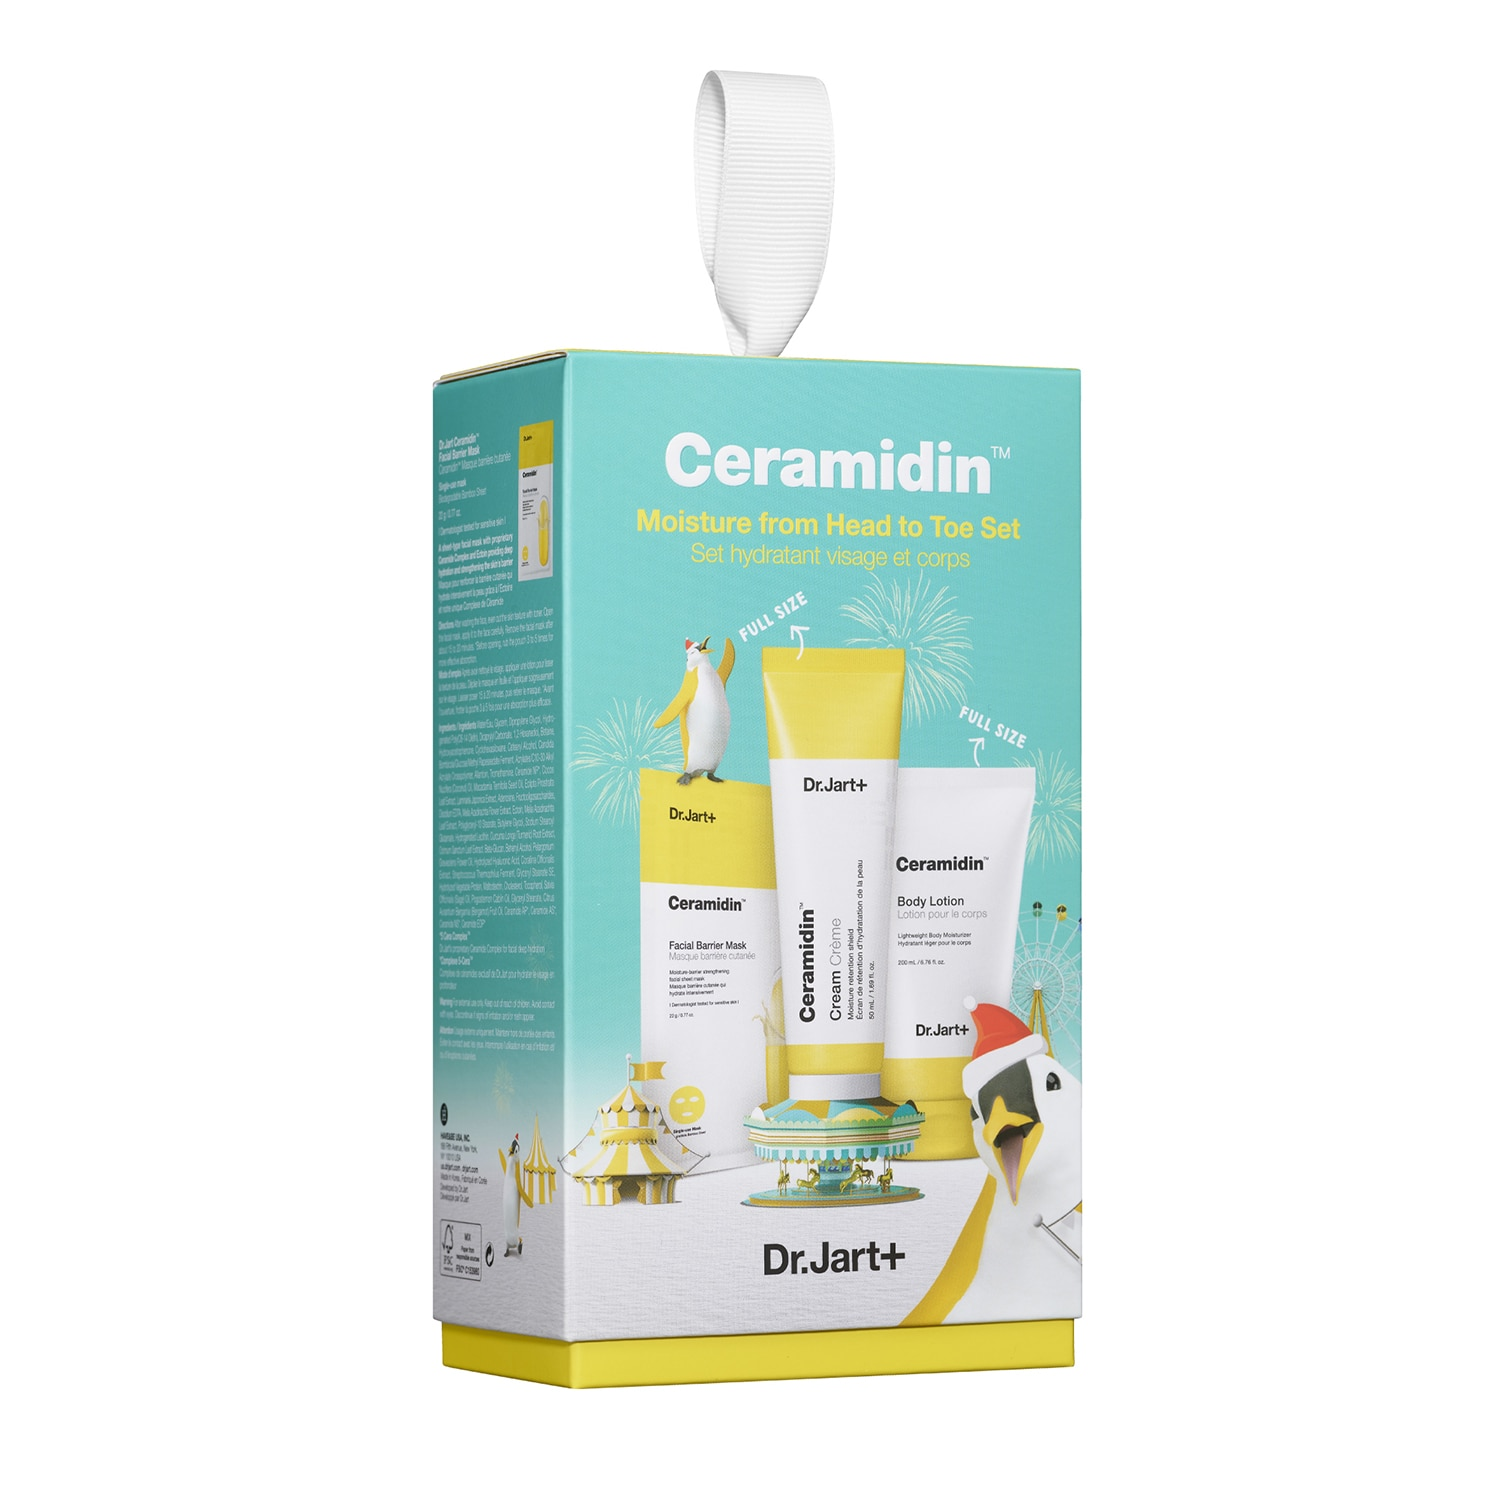 CERAMIDIN™ MOISTURE FROM HEAD TO TOE SET